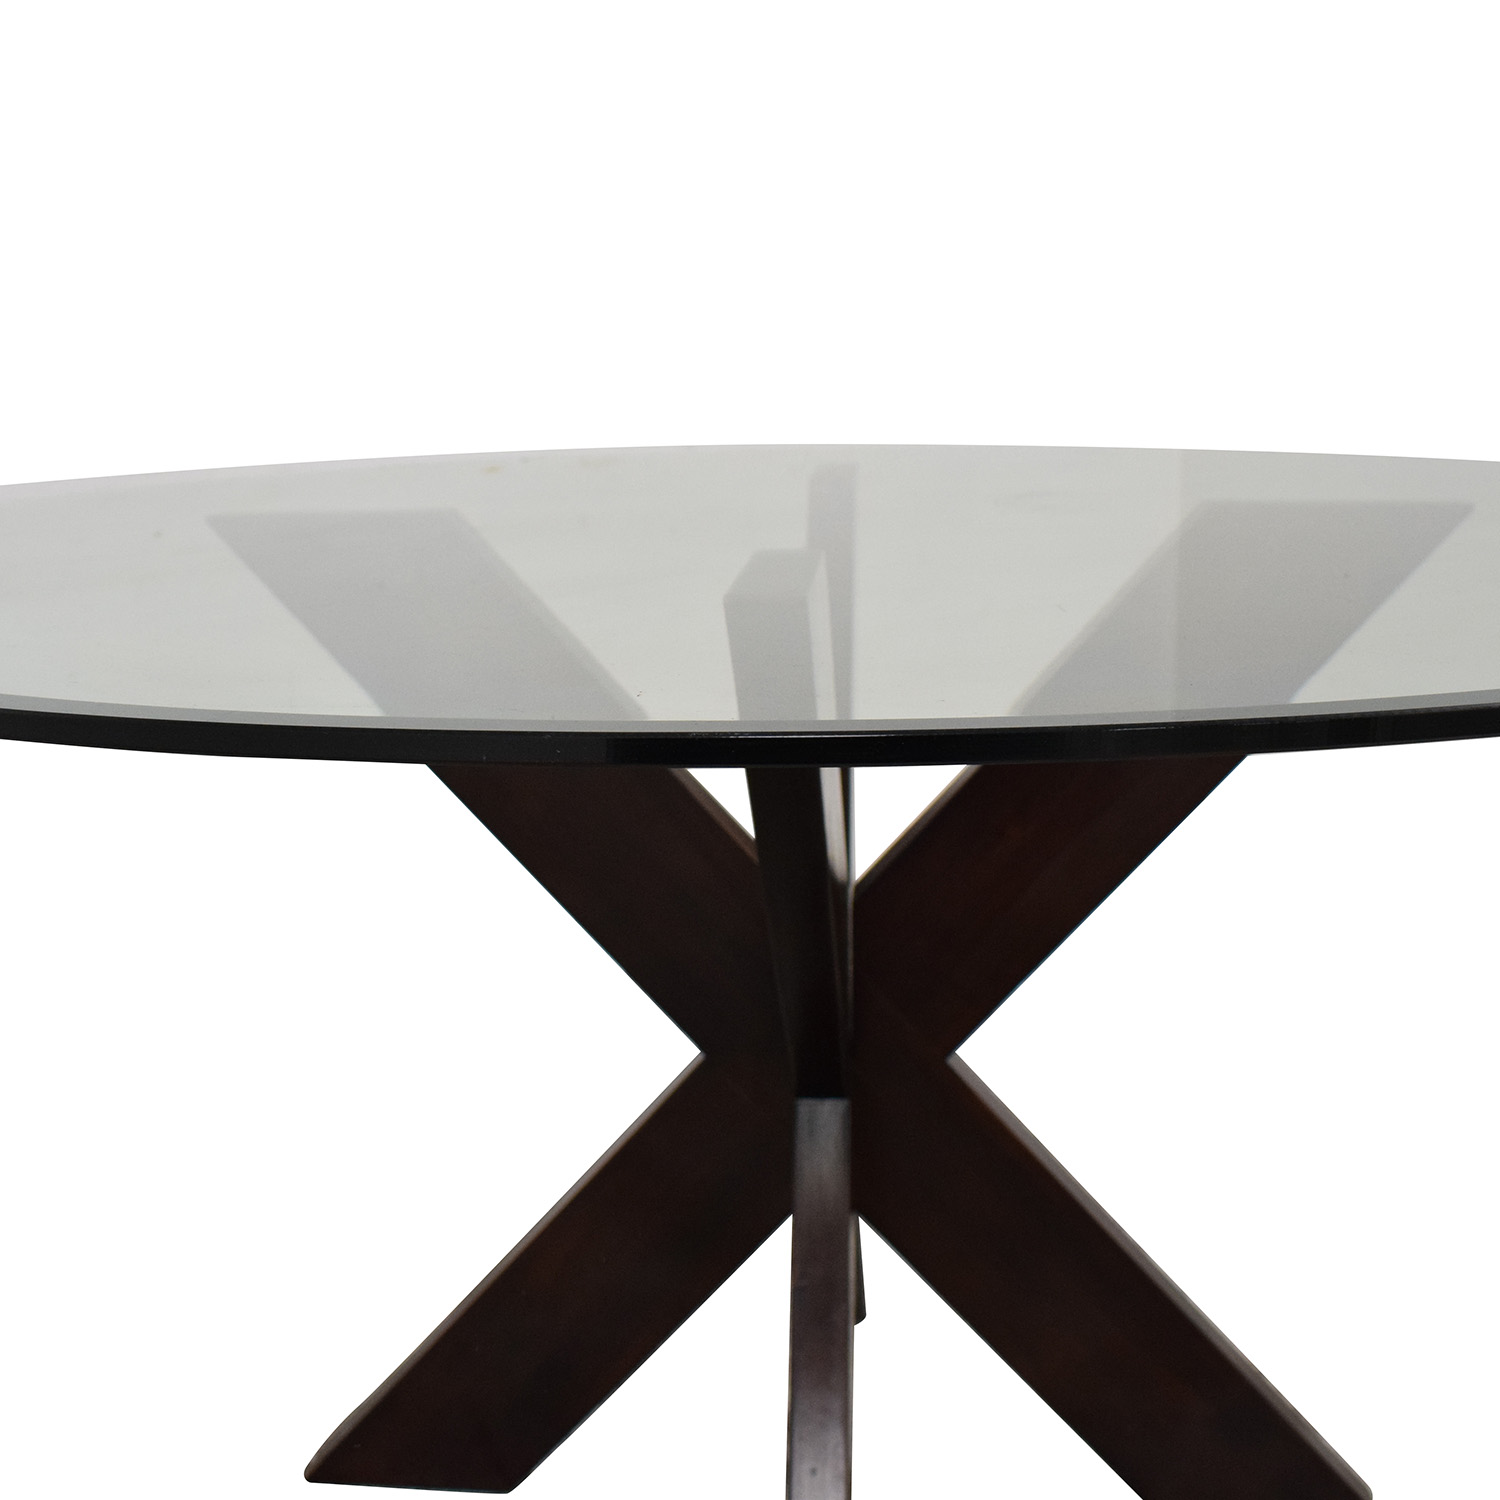 buy Pier 1 X-Base Dining Table with Glass Top Pier 1 Dinner Tables